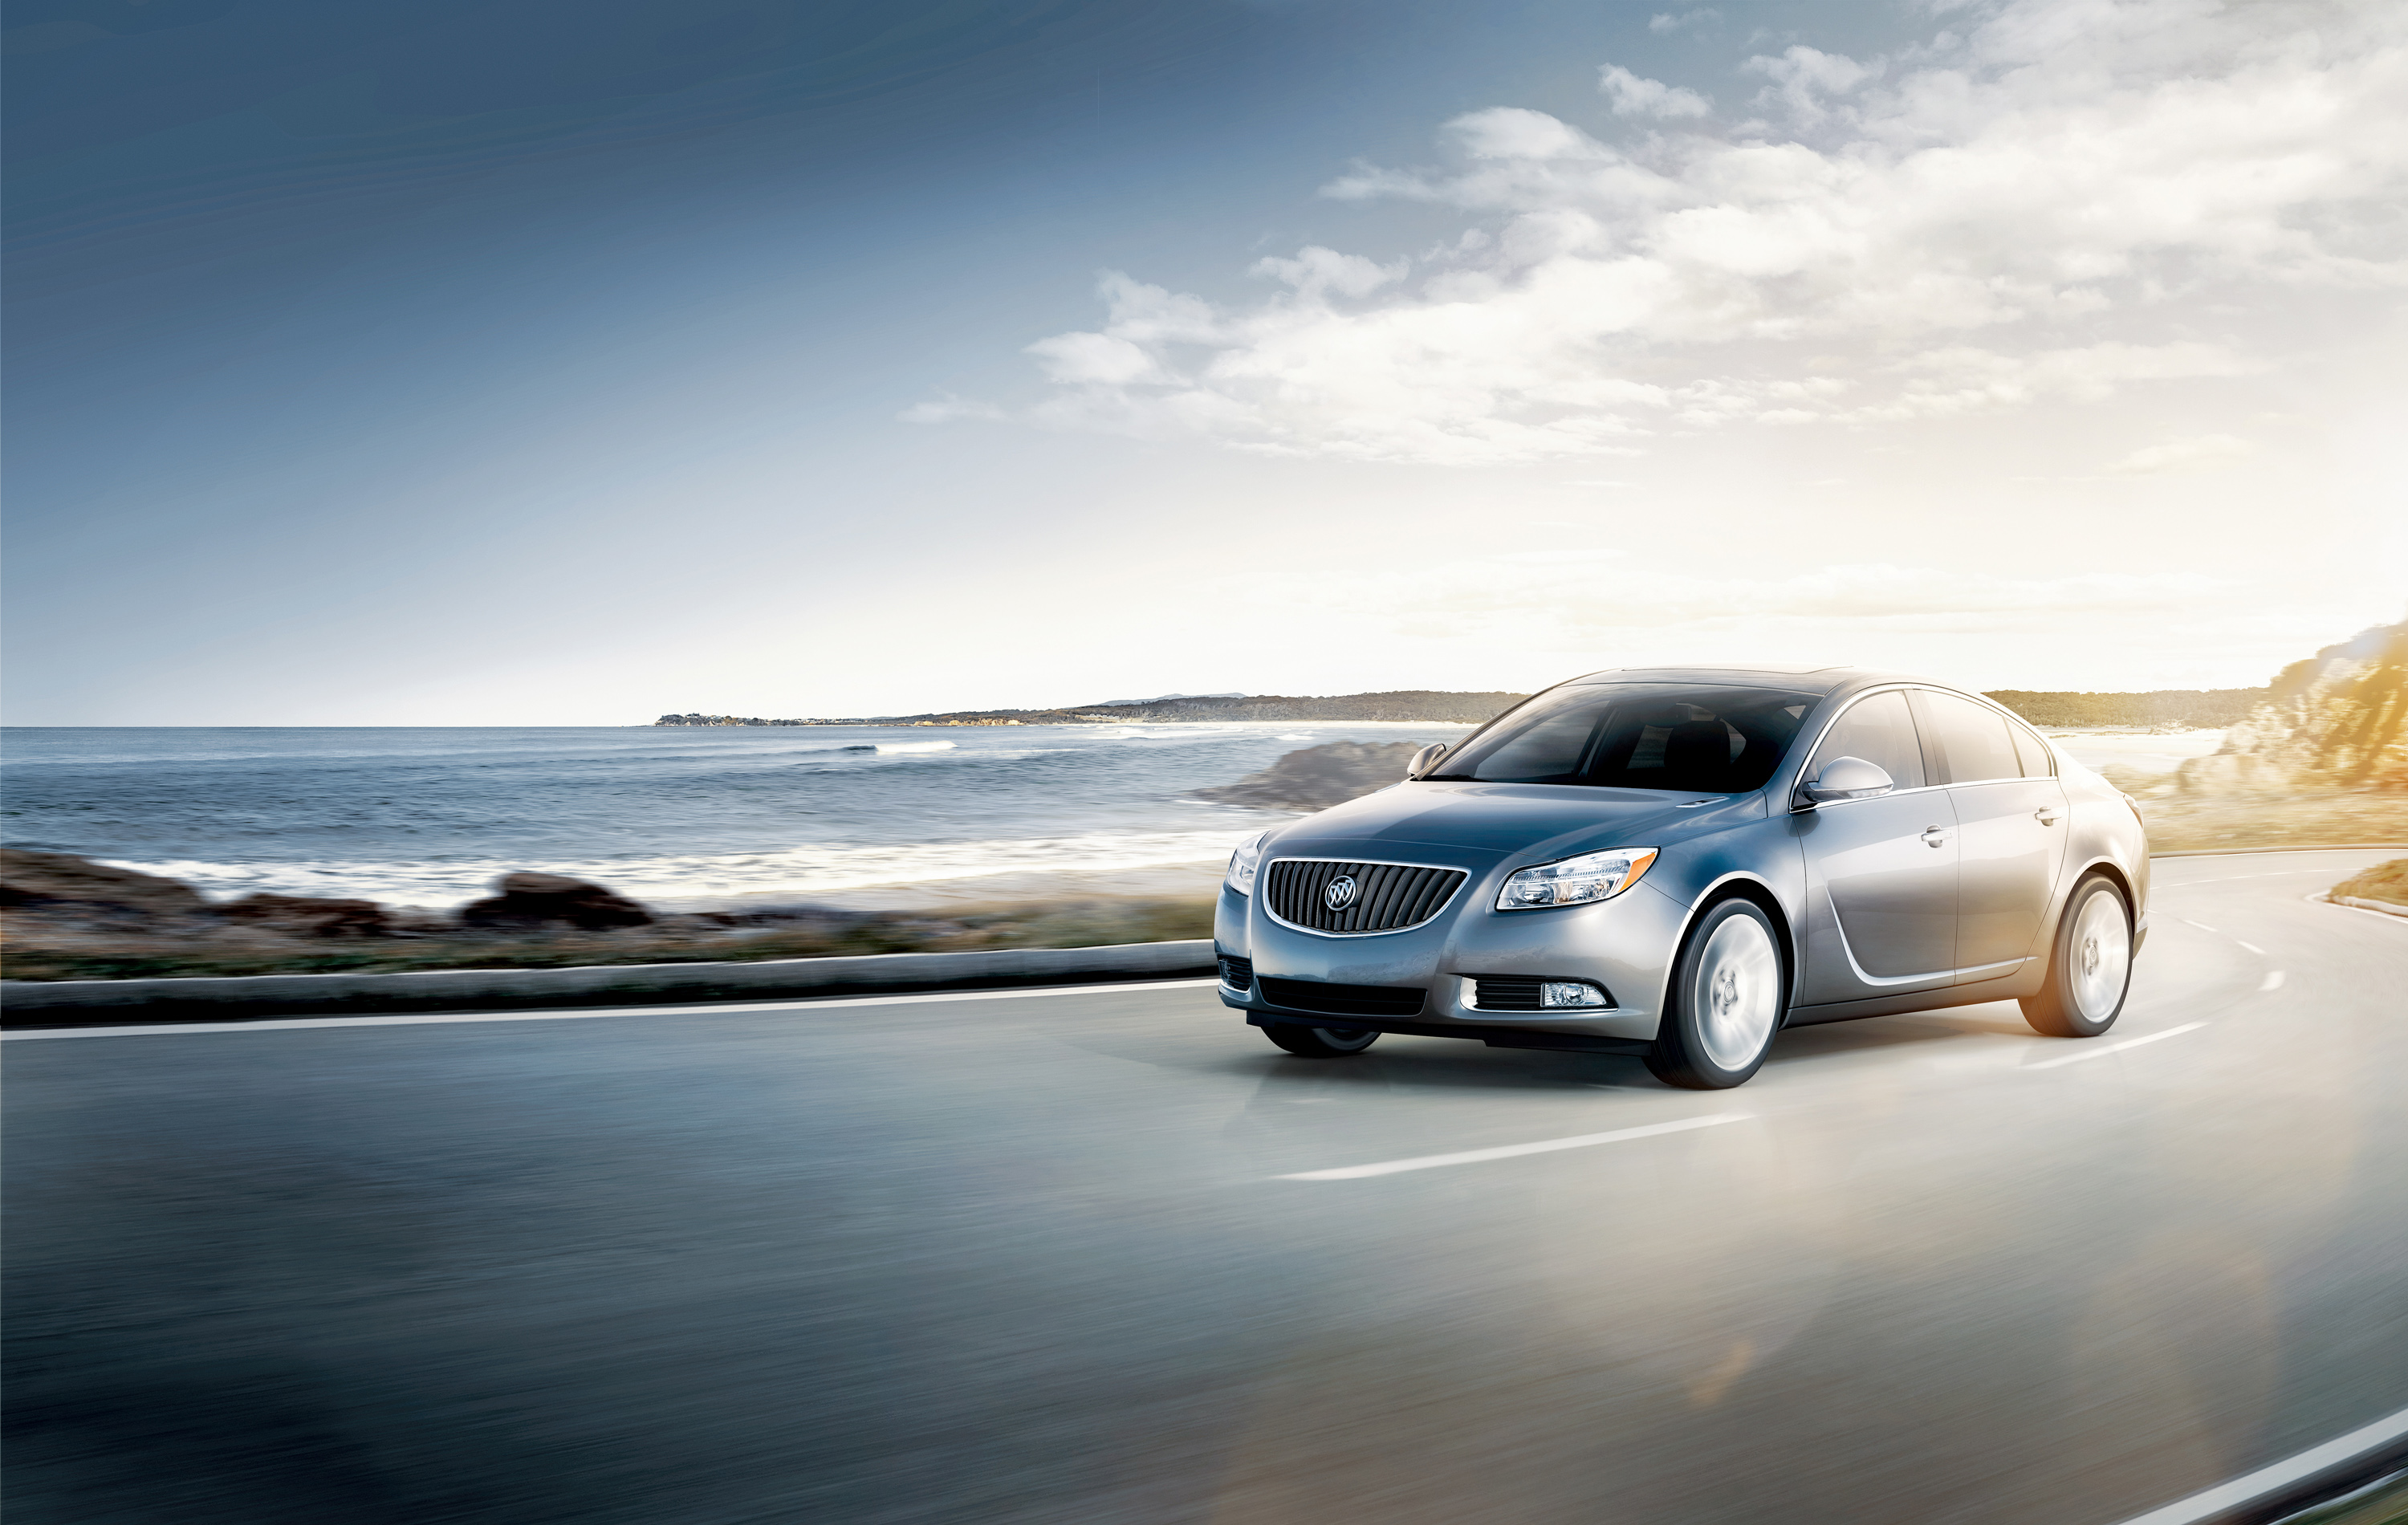 auto report shanghai show a news holden built be buick concept vehicles riviera to chinese commodore h